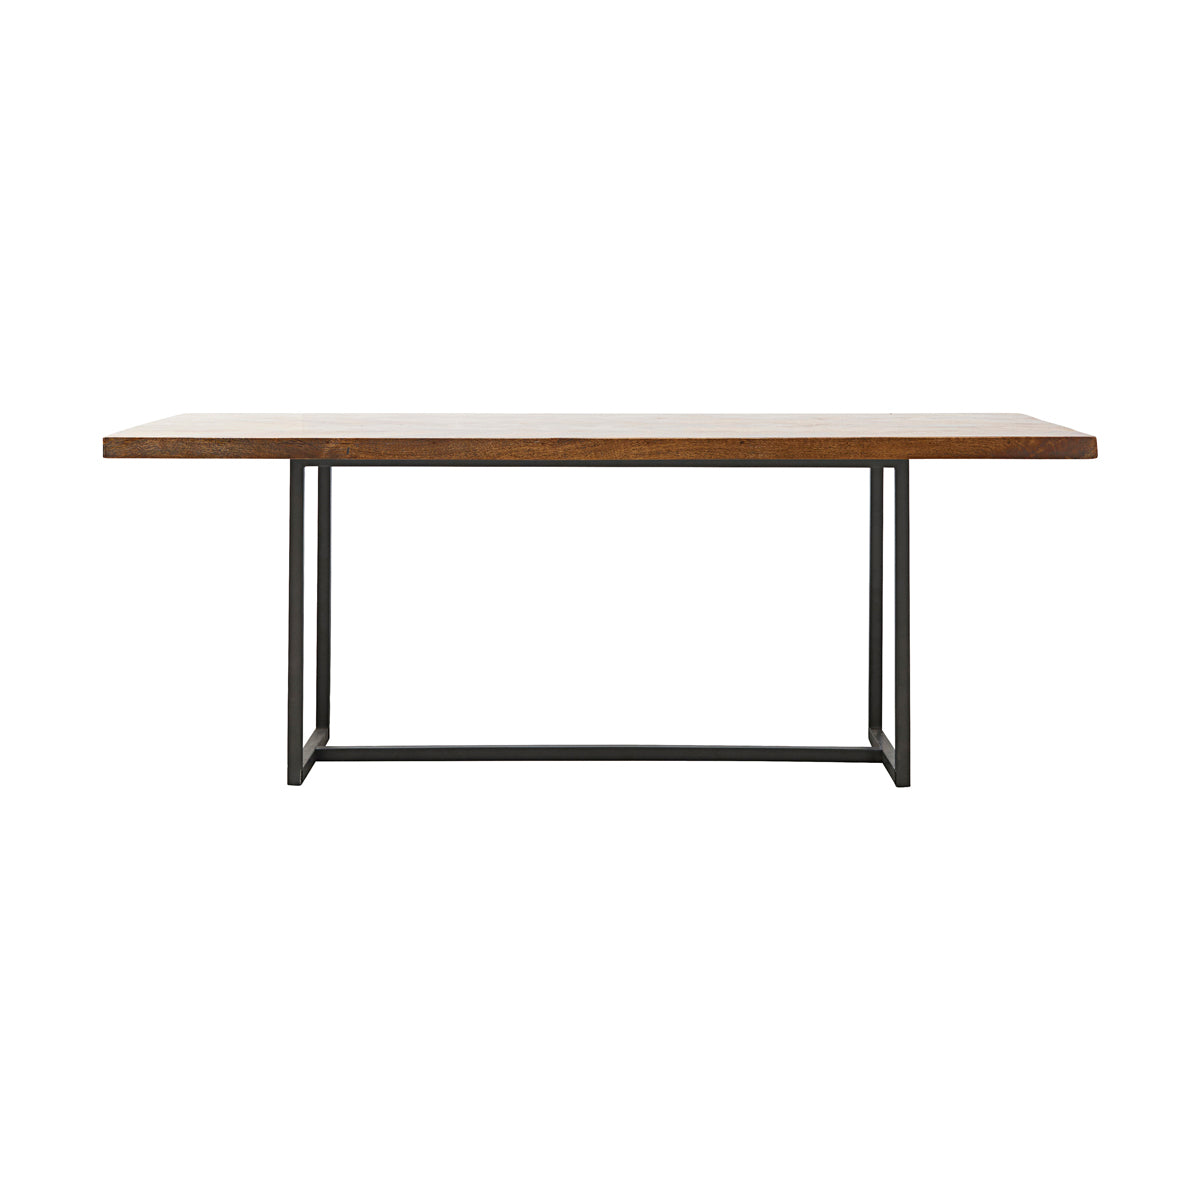 Dining table, Kant 200cm